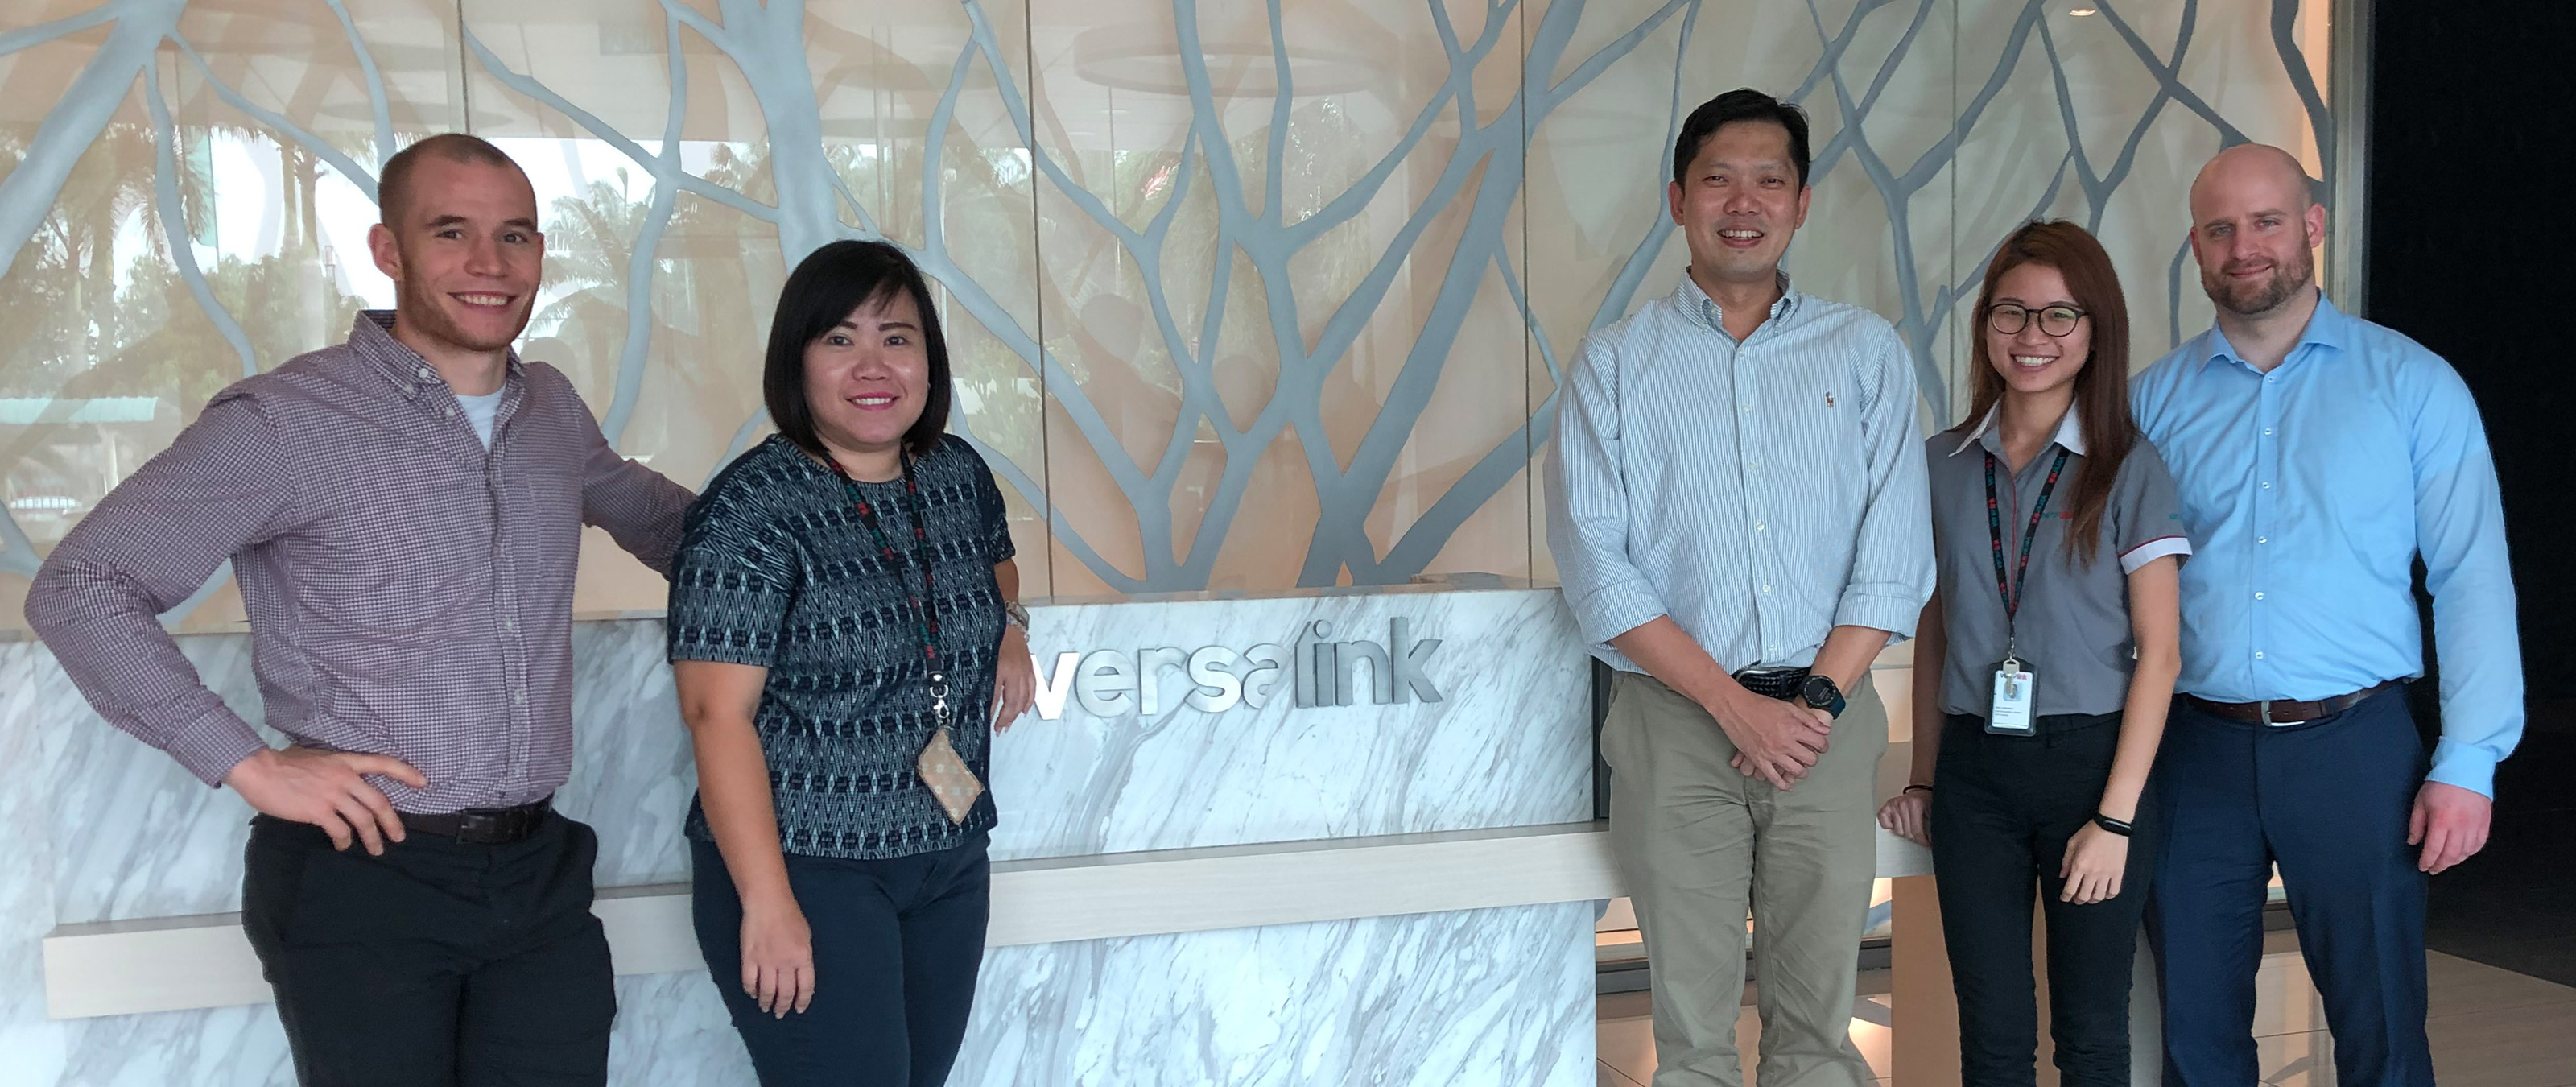 Responsible persons from Versalink in Controlling and Sales